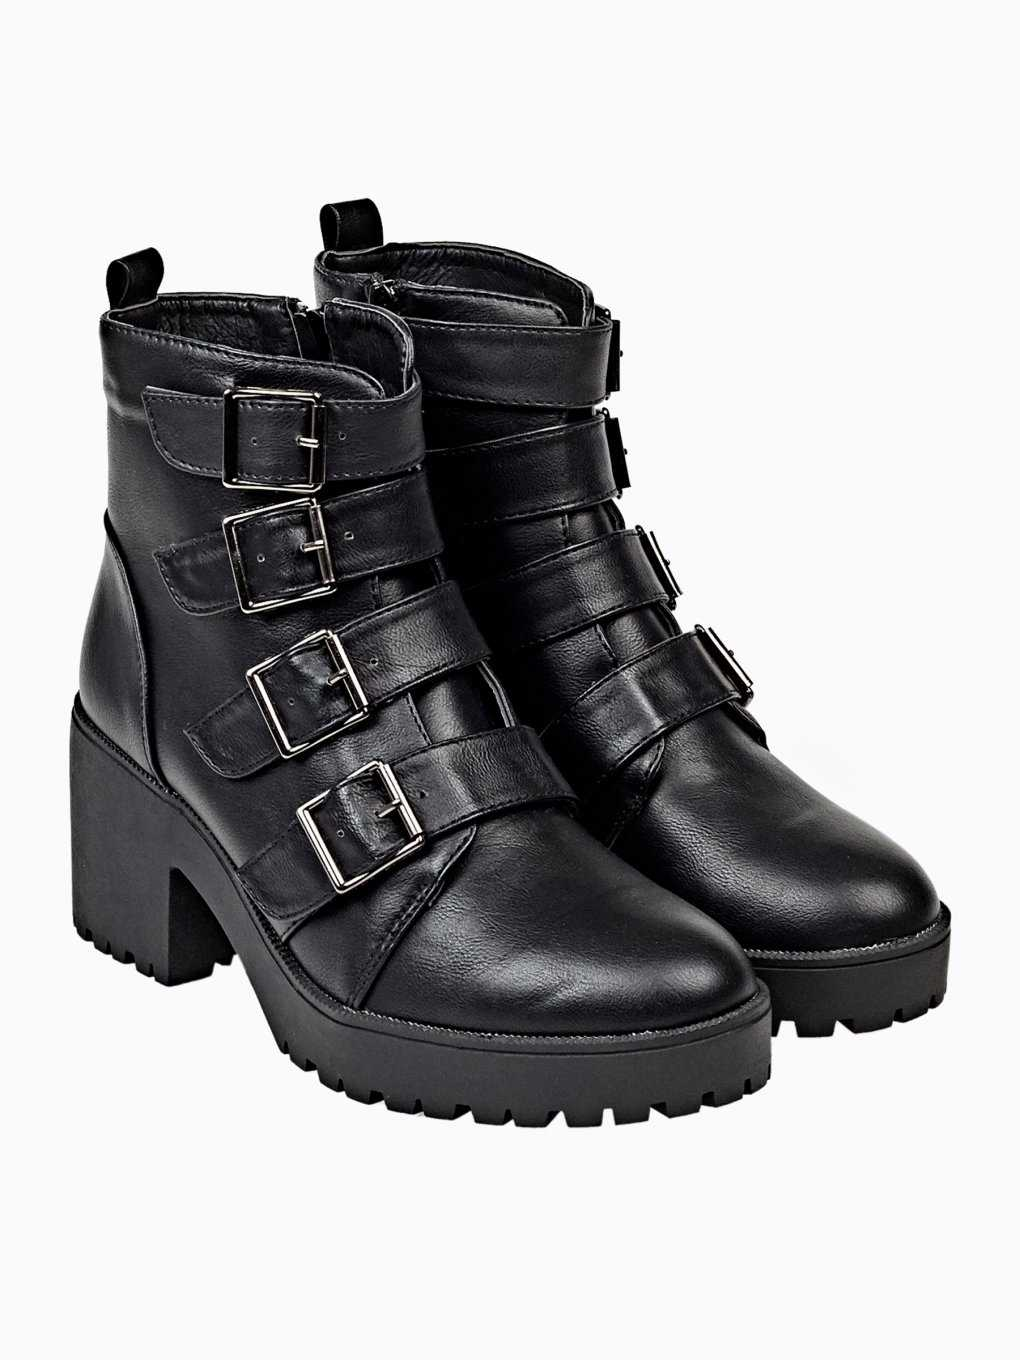 Biker boots with track sole